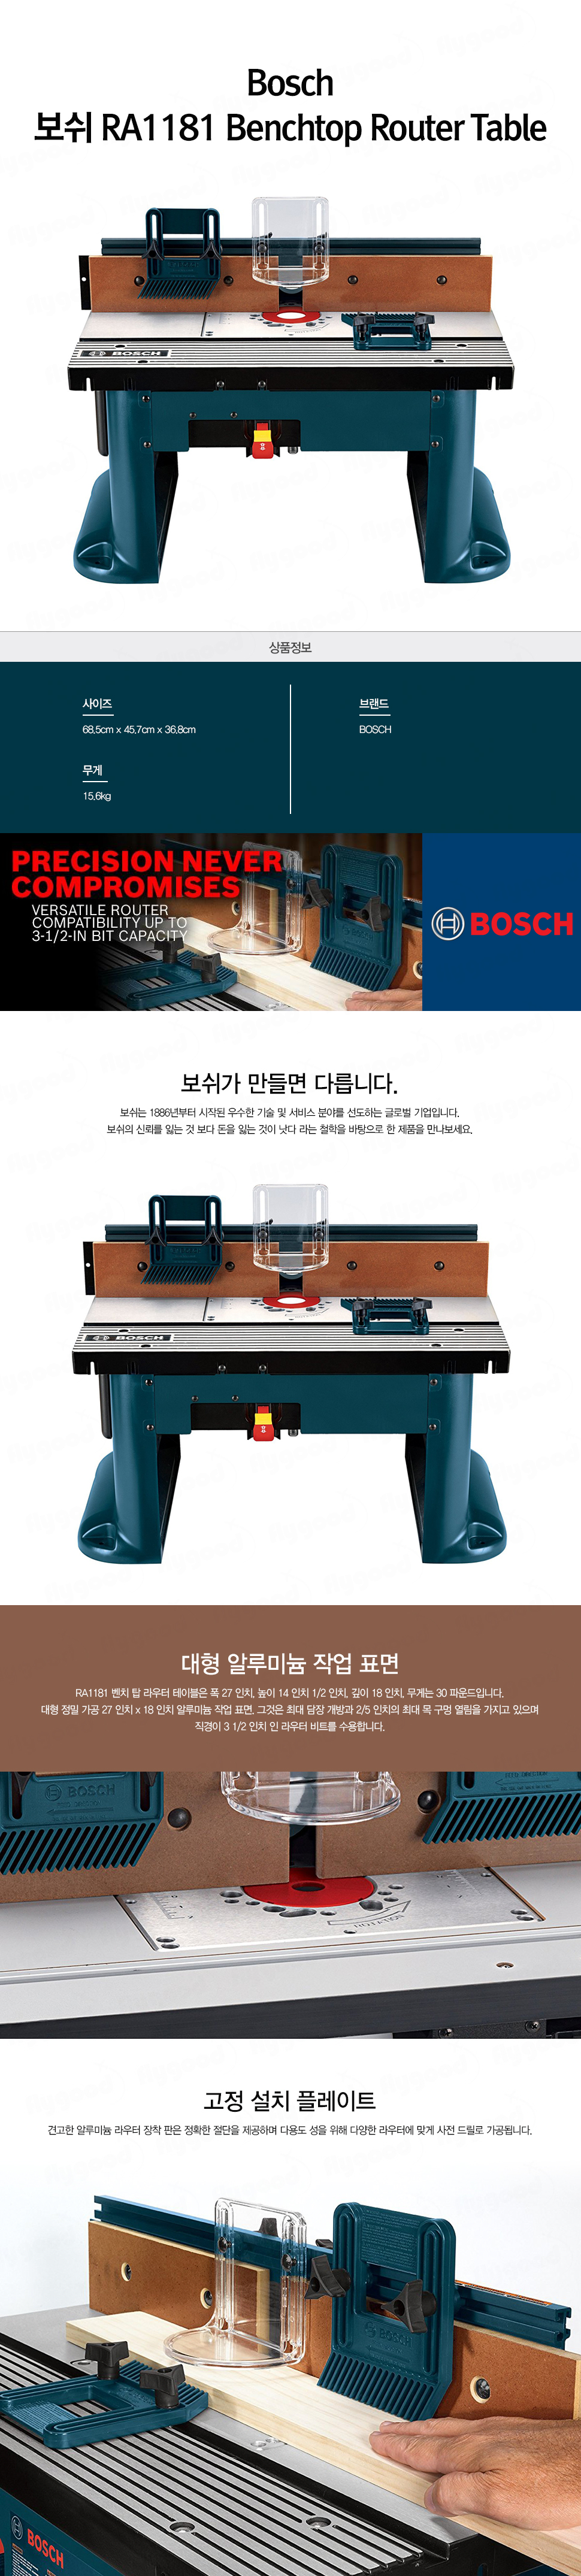 Bosch_RA1181_Benchtop_Router_Table_01.jpg